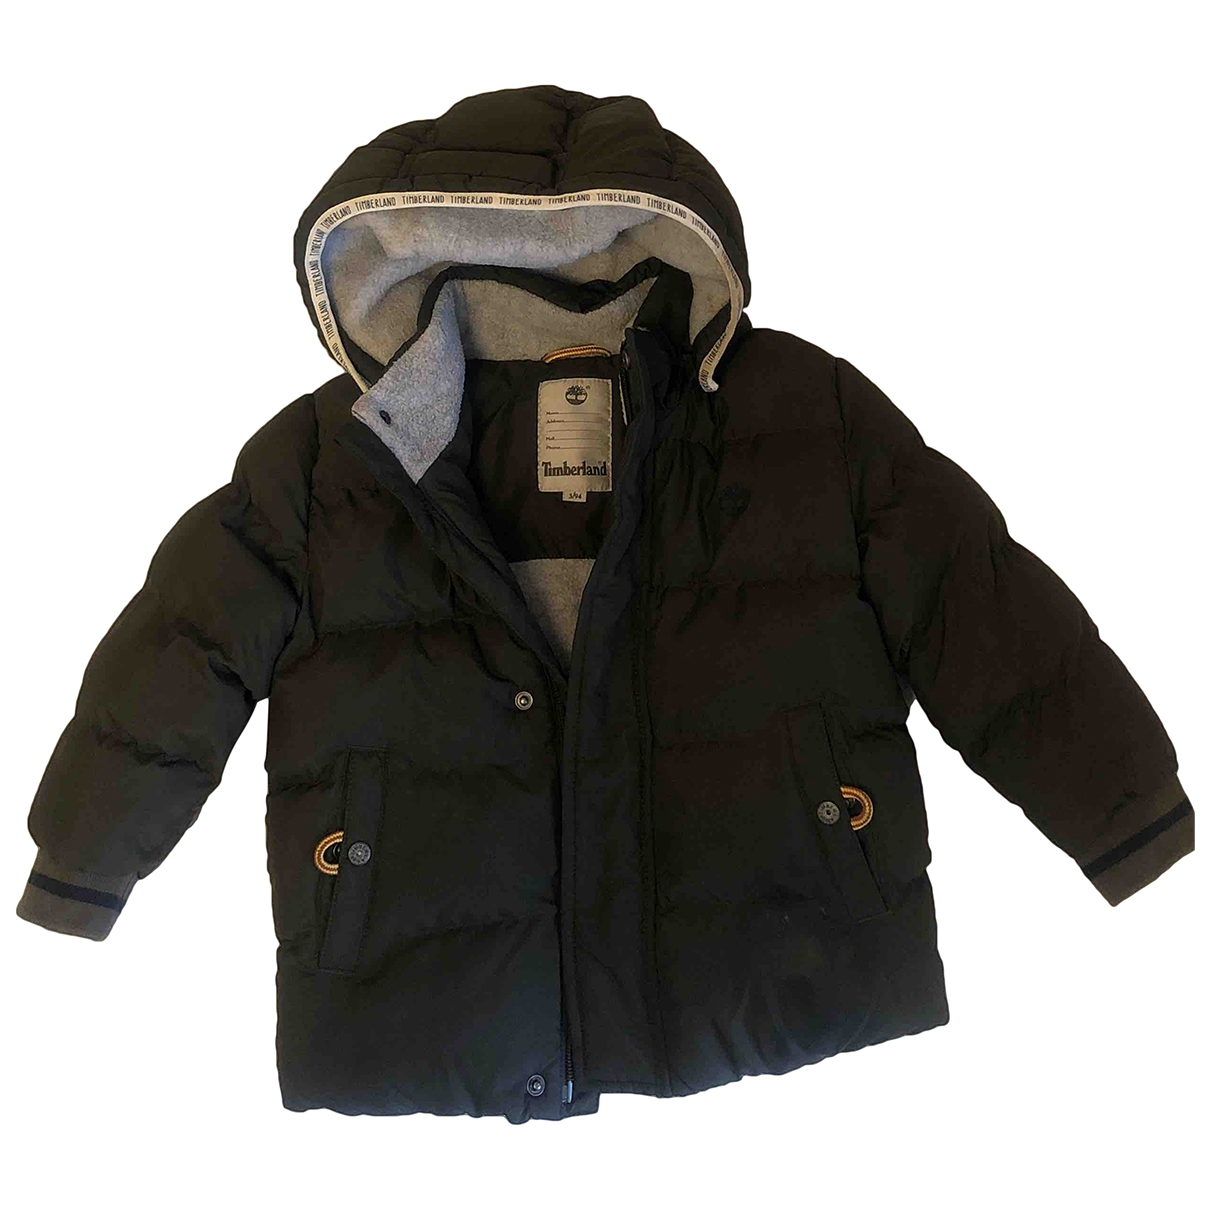 Timberland \N Green jacket & coat for Kids 3 years - up to 98cm FR